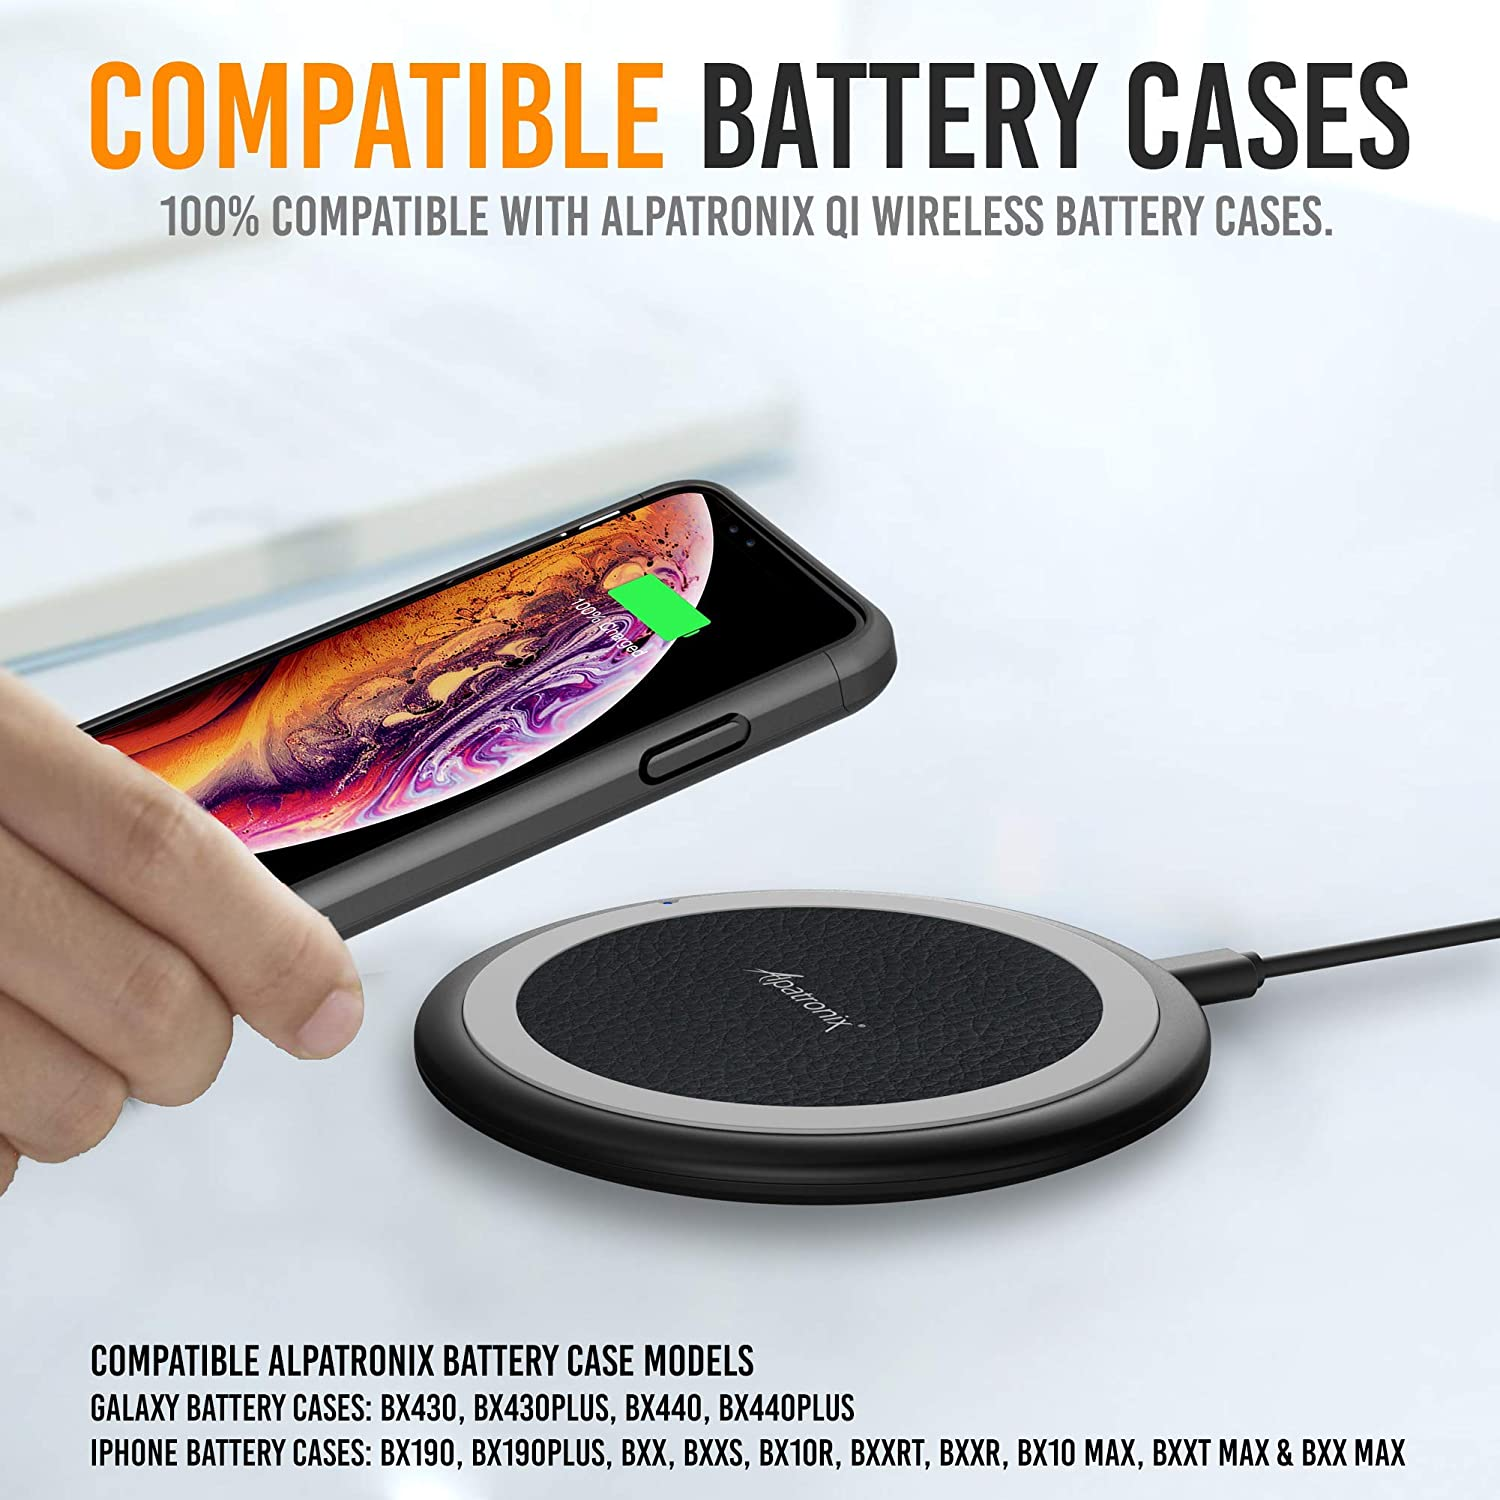 Wireless Charger Black Galaxy S10+//S9+//S8+//Note 8 7.5W 10W iPhone 11//Pro Max//XS Max//XR//XS//8 Plus No AC Adapter Alpatronix CX102 10W Qi-Certified Fast Quick Charge Charging Pad Compatible with